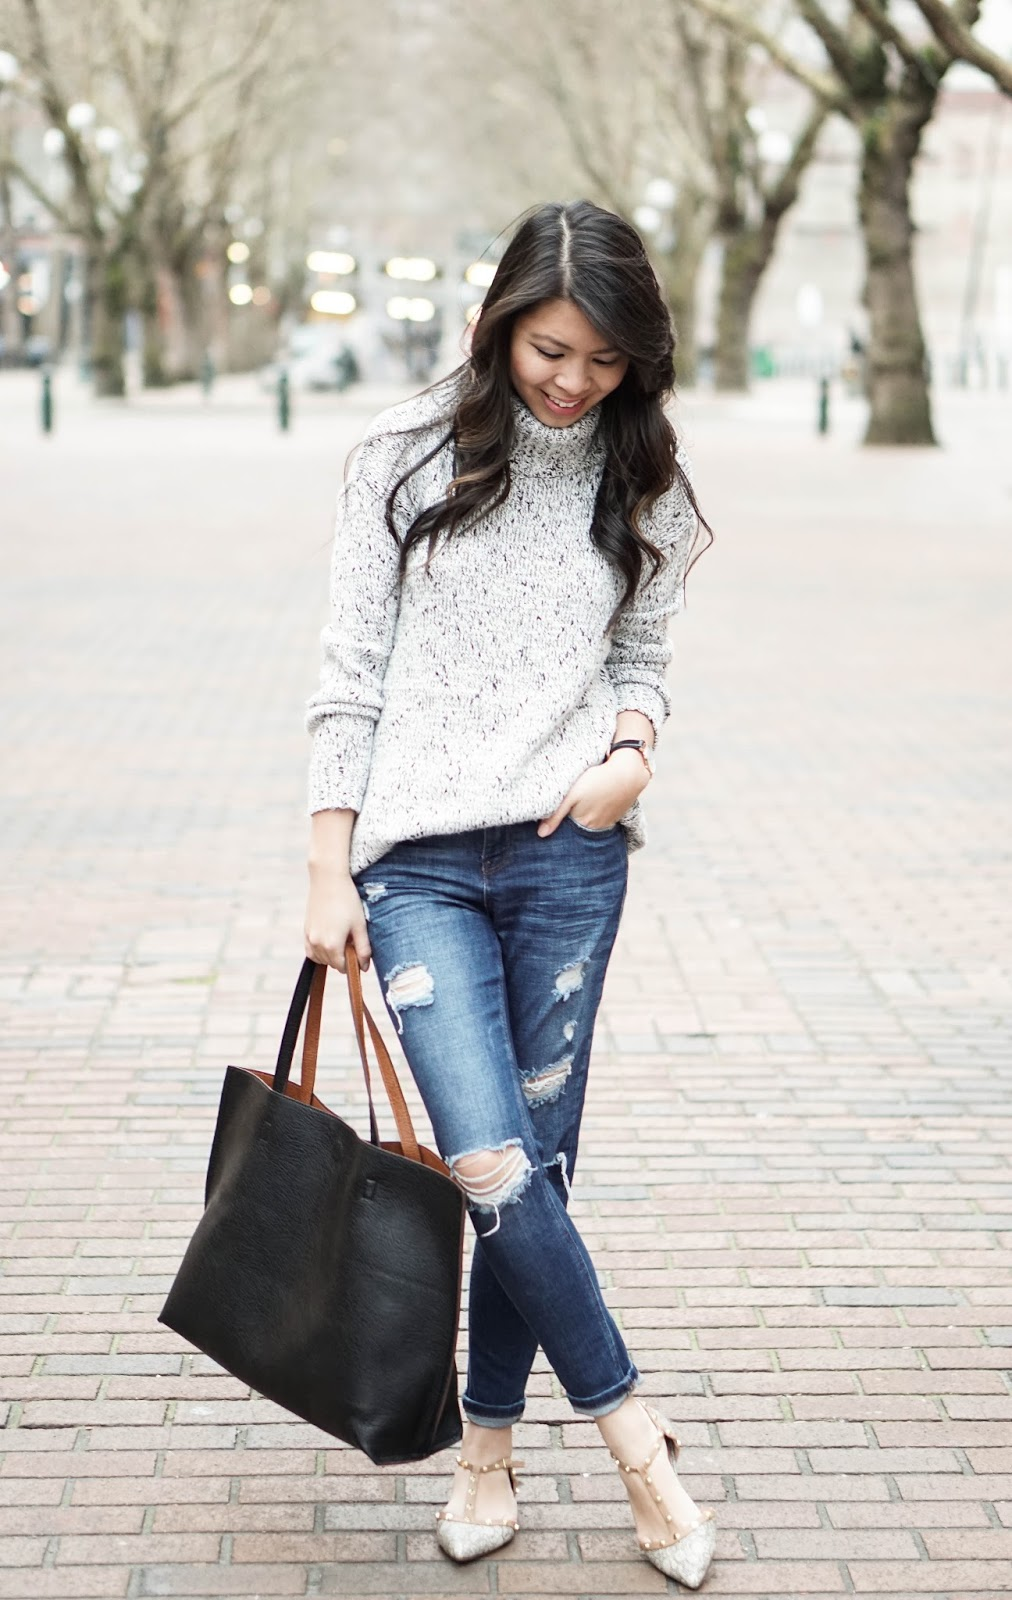 Brunch Attire: Knit Sweater, Ripped Jeans, and Studded ...